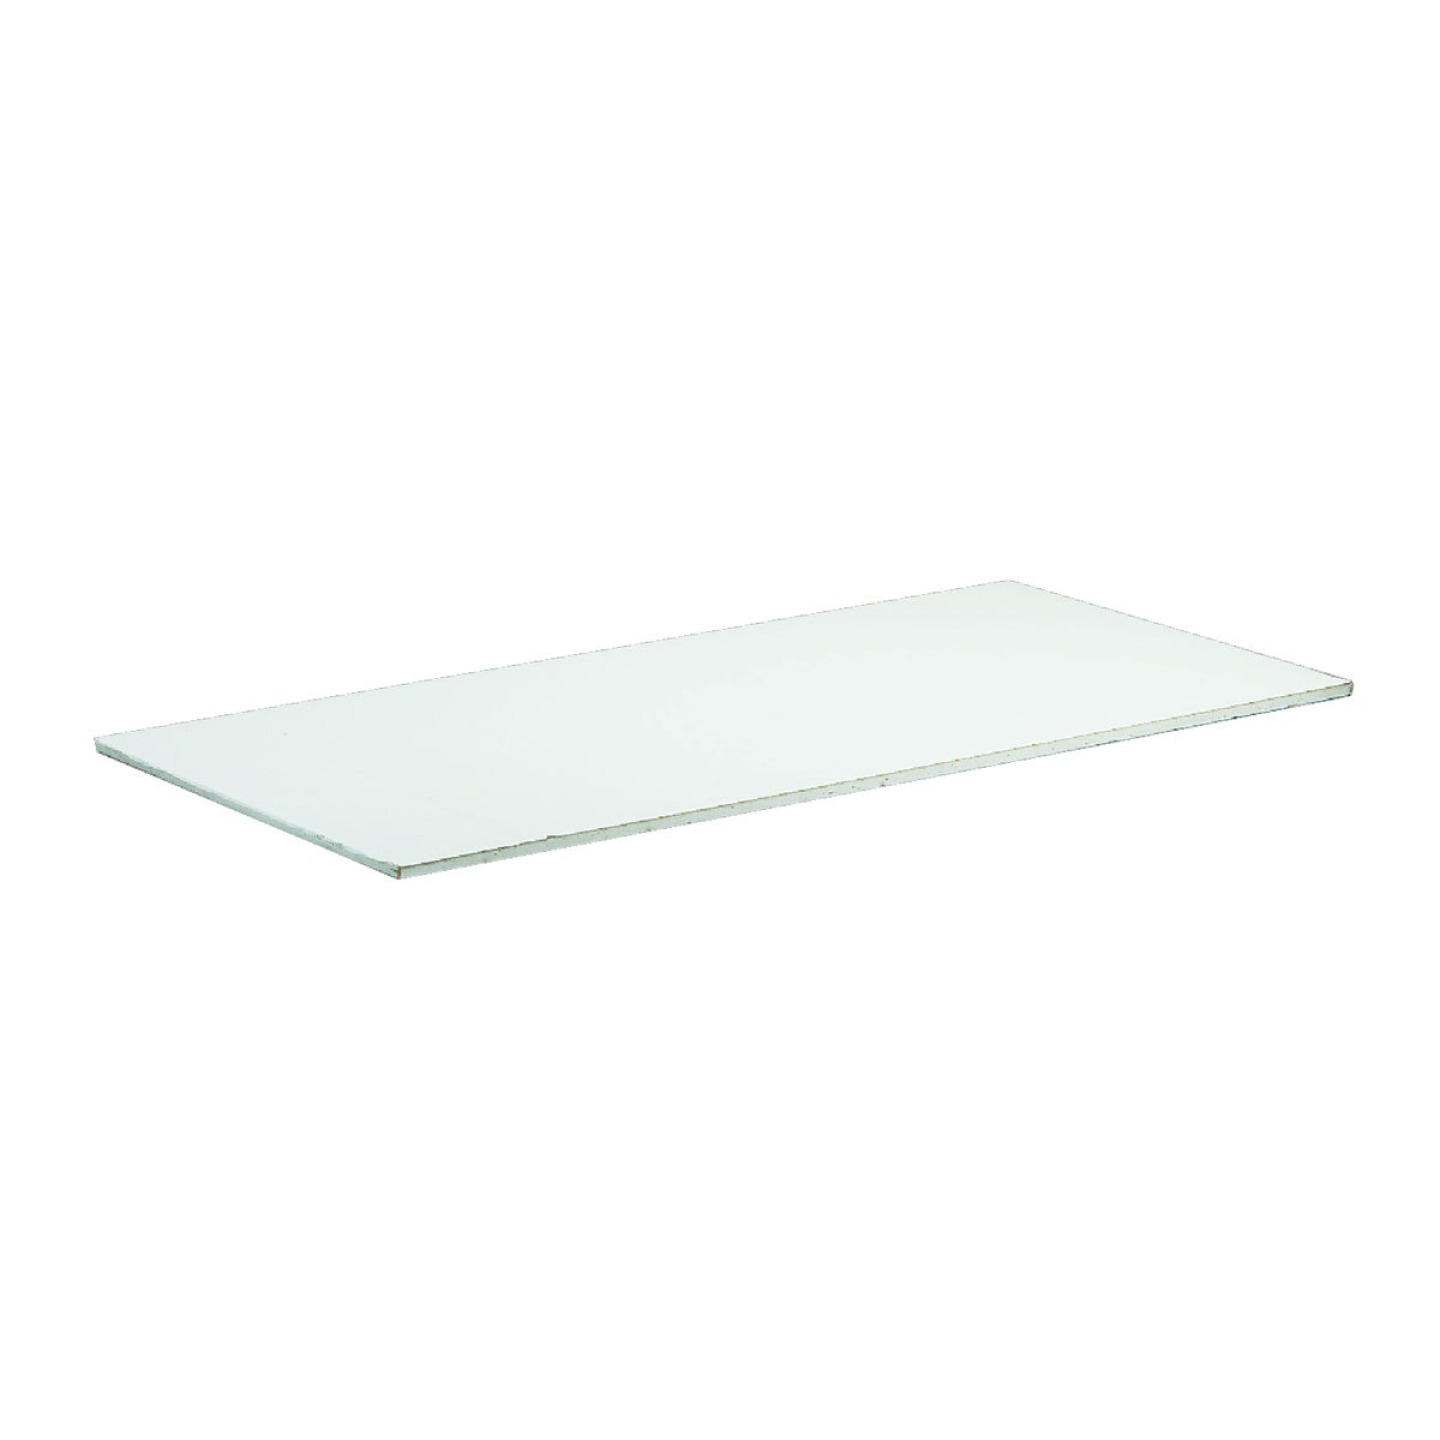 Sheetrock ClimaPlus 2 Ft. x 4 Ft. White Gypsum Fire Rated Lay-In Ceiling Tile (4-Count) Image 2